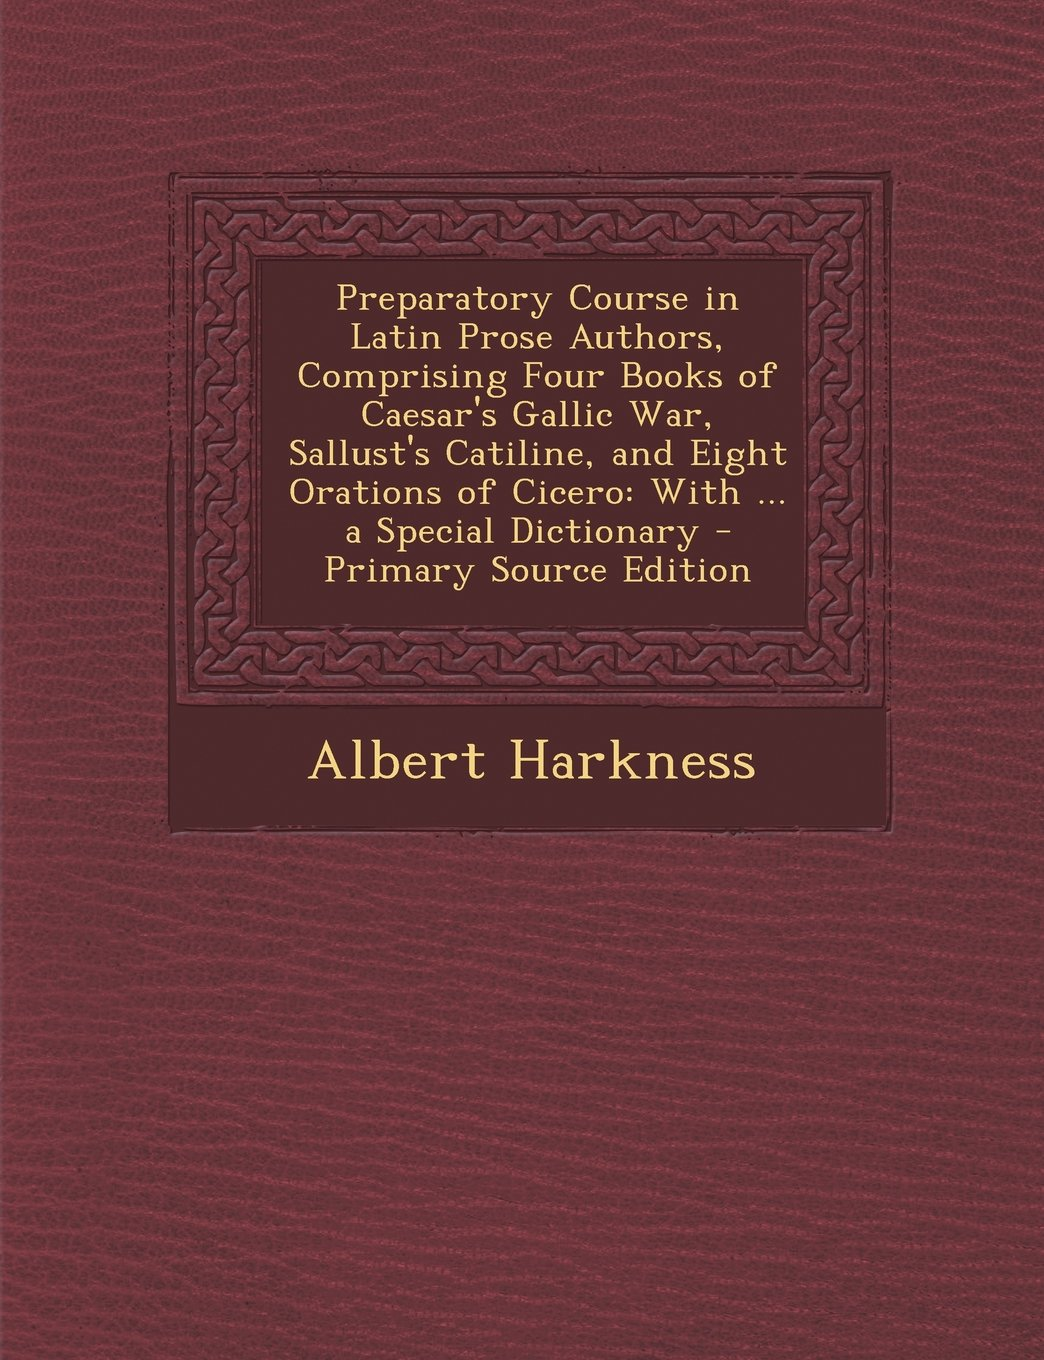 Preparatory Course in Latin Prose Authors, Comprising Four Books of Caesar's Gallic War, Sallust's Catiline, and Eight Orations of Cicero: With ... a Special Dictionary (Latin Edition) pdf